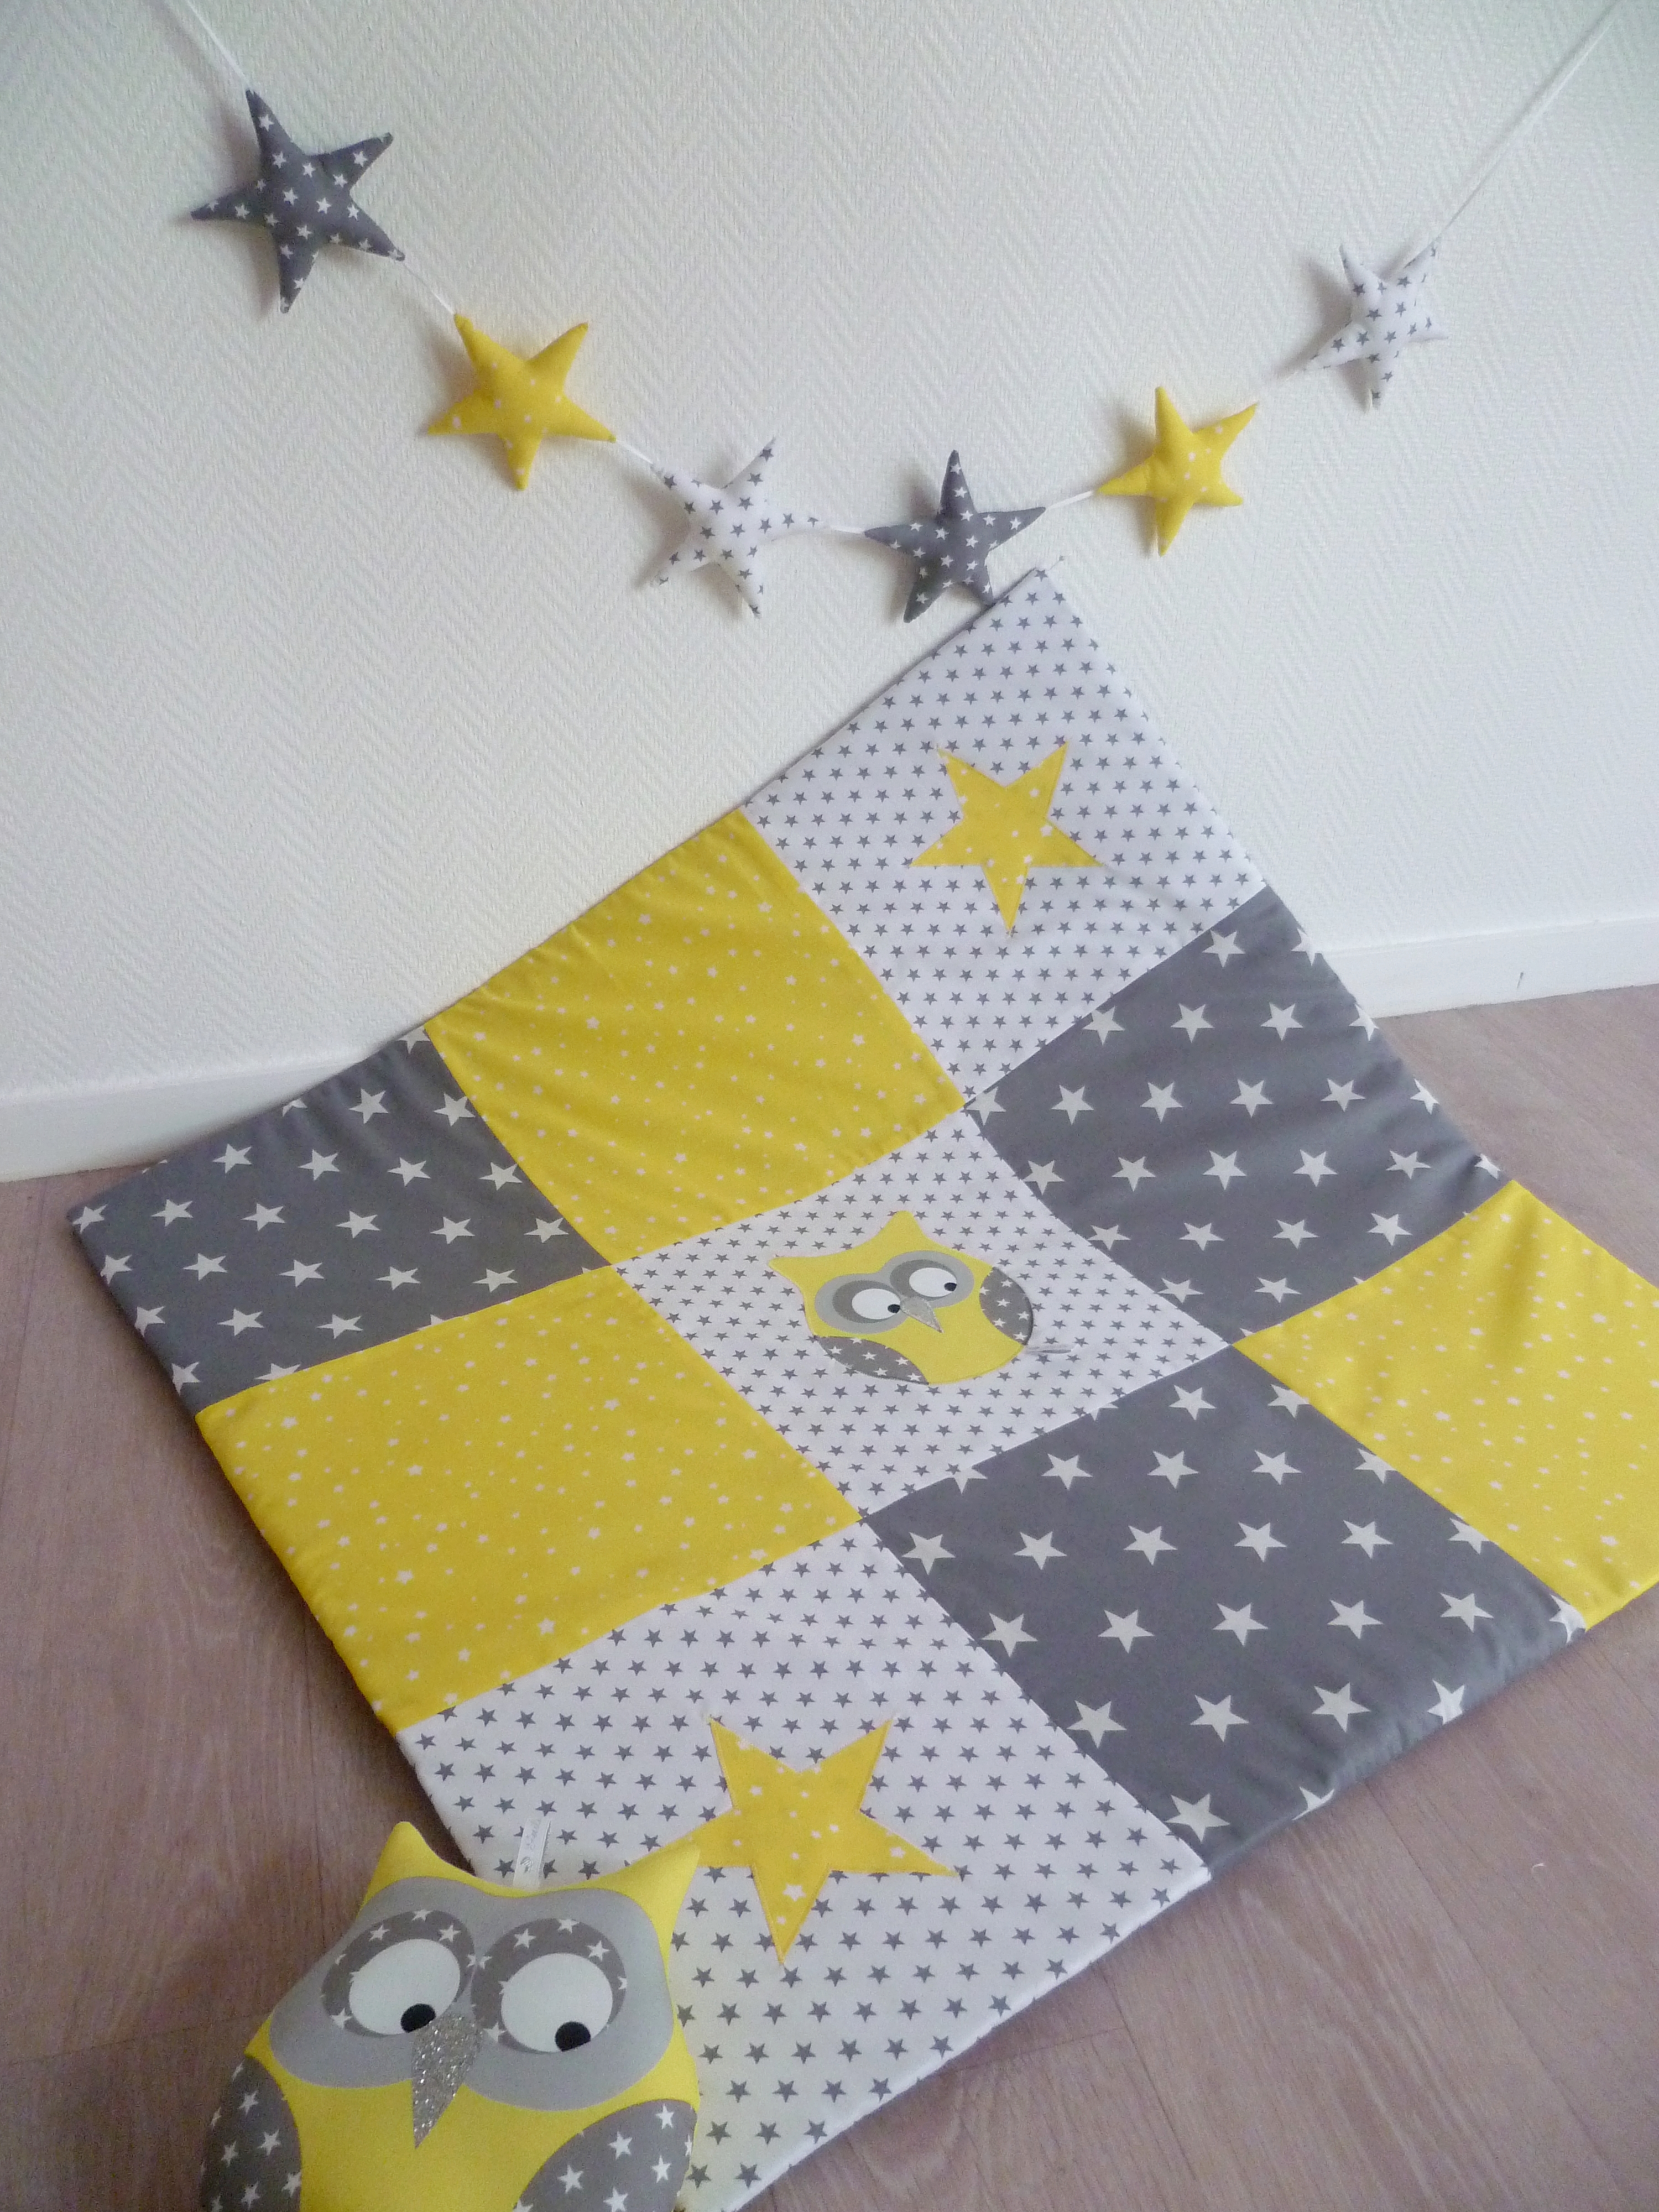 tapis de jeu hibou patchwork jaune guili gribouilli linge de lit et de d co pour enfant. Black Bedroom Furniture Sets. Home Design Ideas